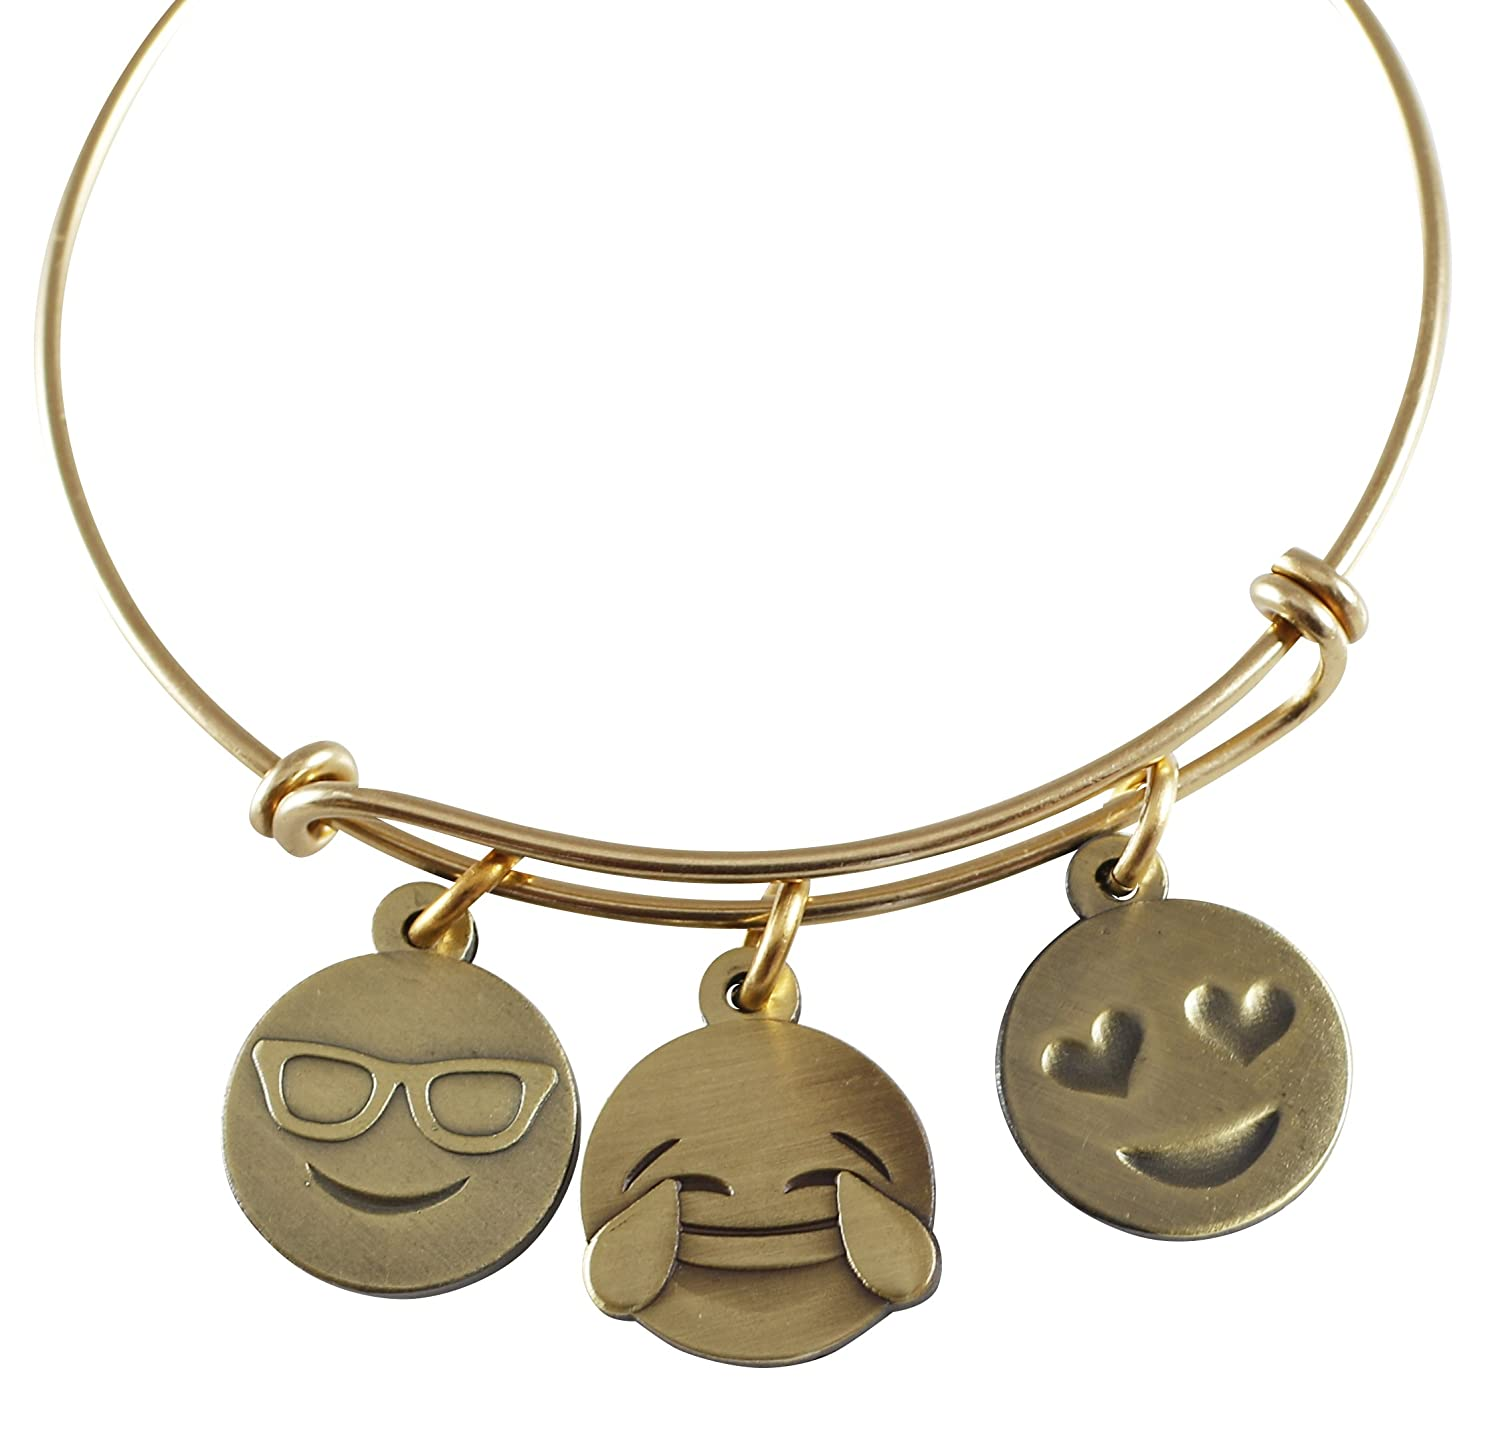 Amazon Emoji Charm Bracelet Live Laugh Love Antique